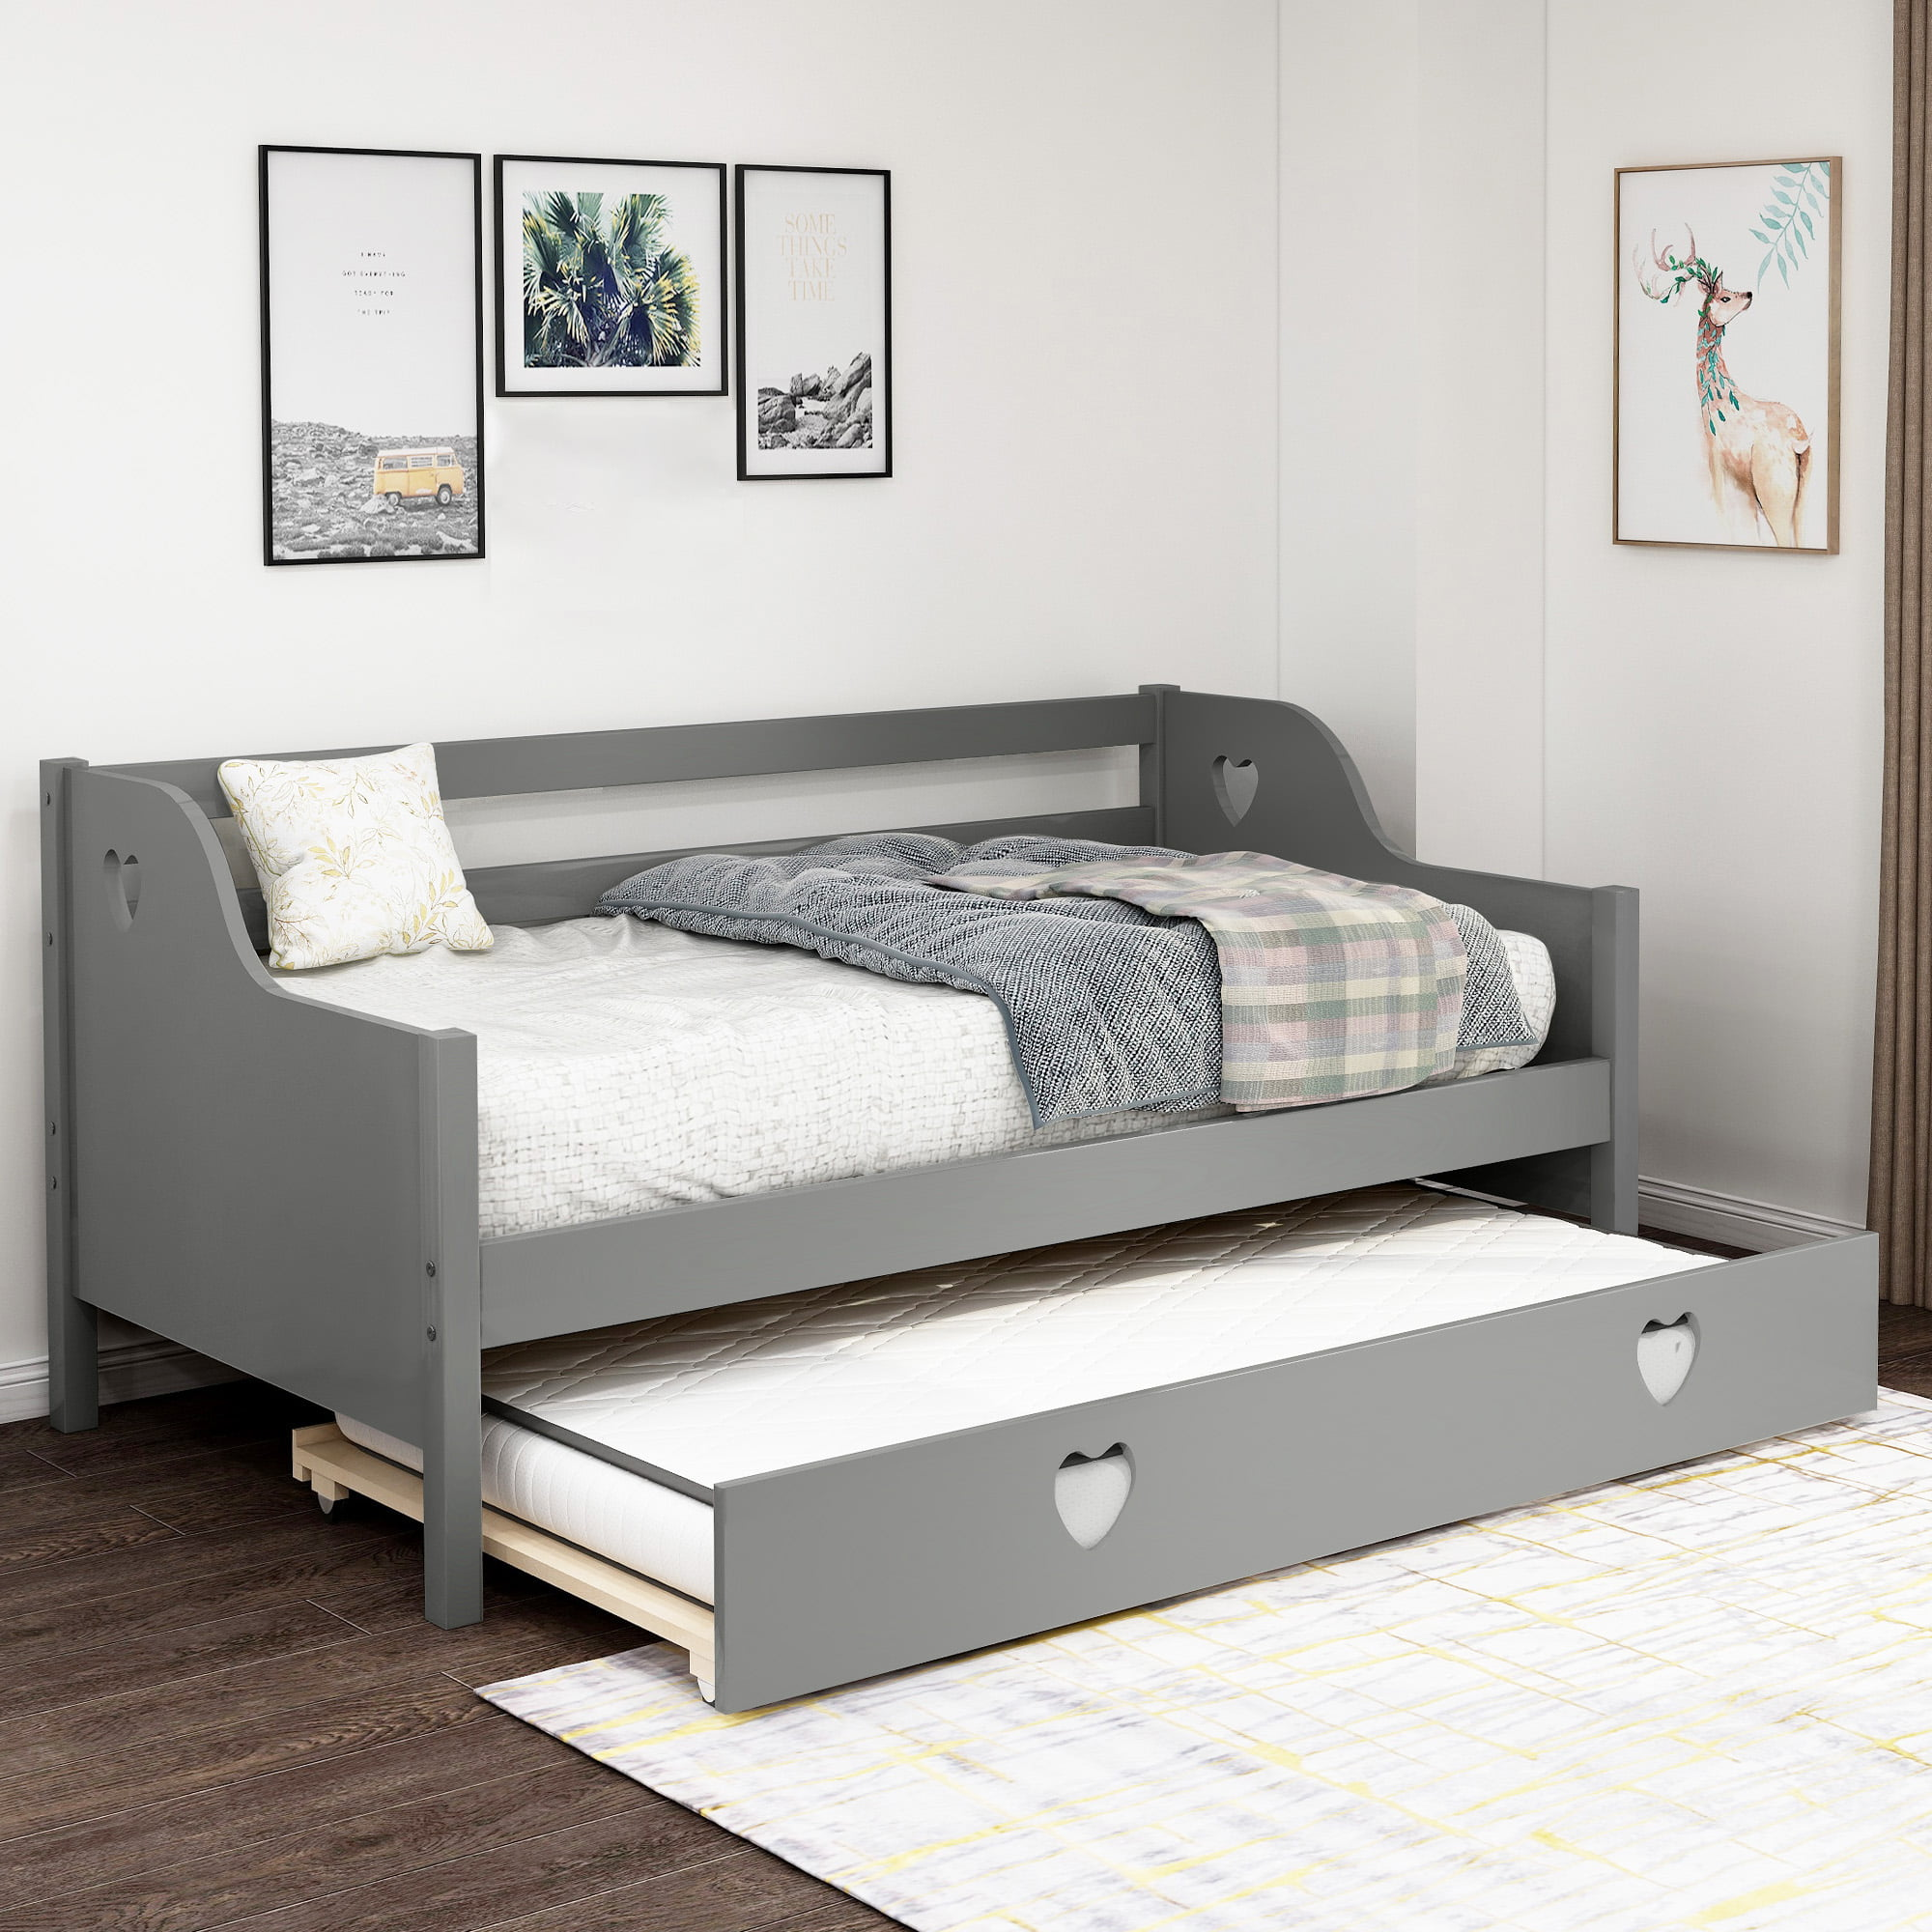 - Twin Daybeds For Adults, URHOMEPRO Twin Daybed With Trundle, Heavy